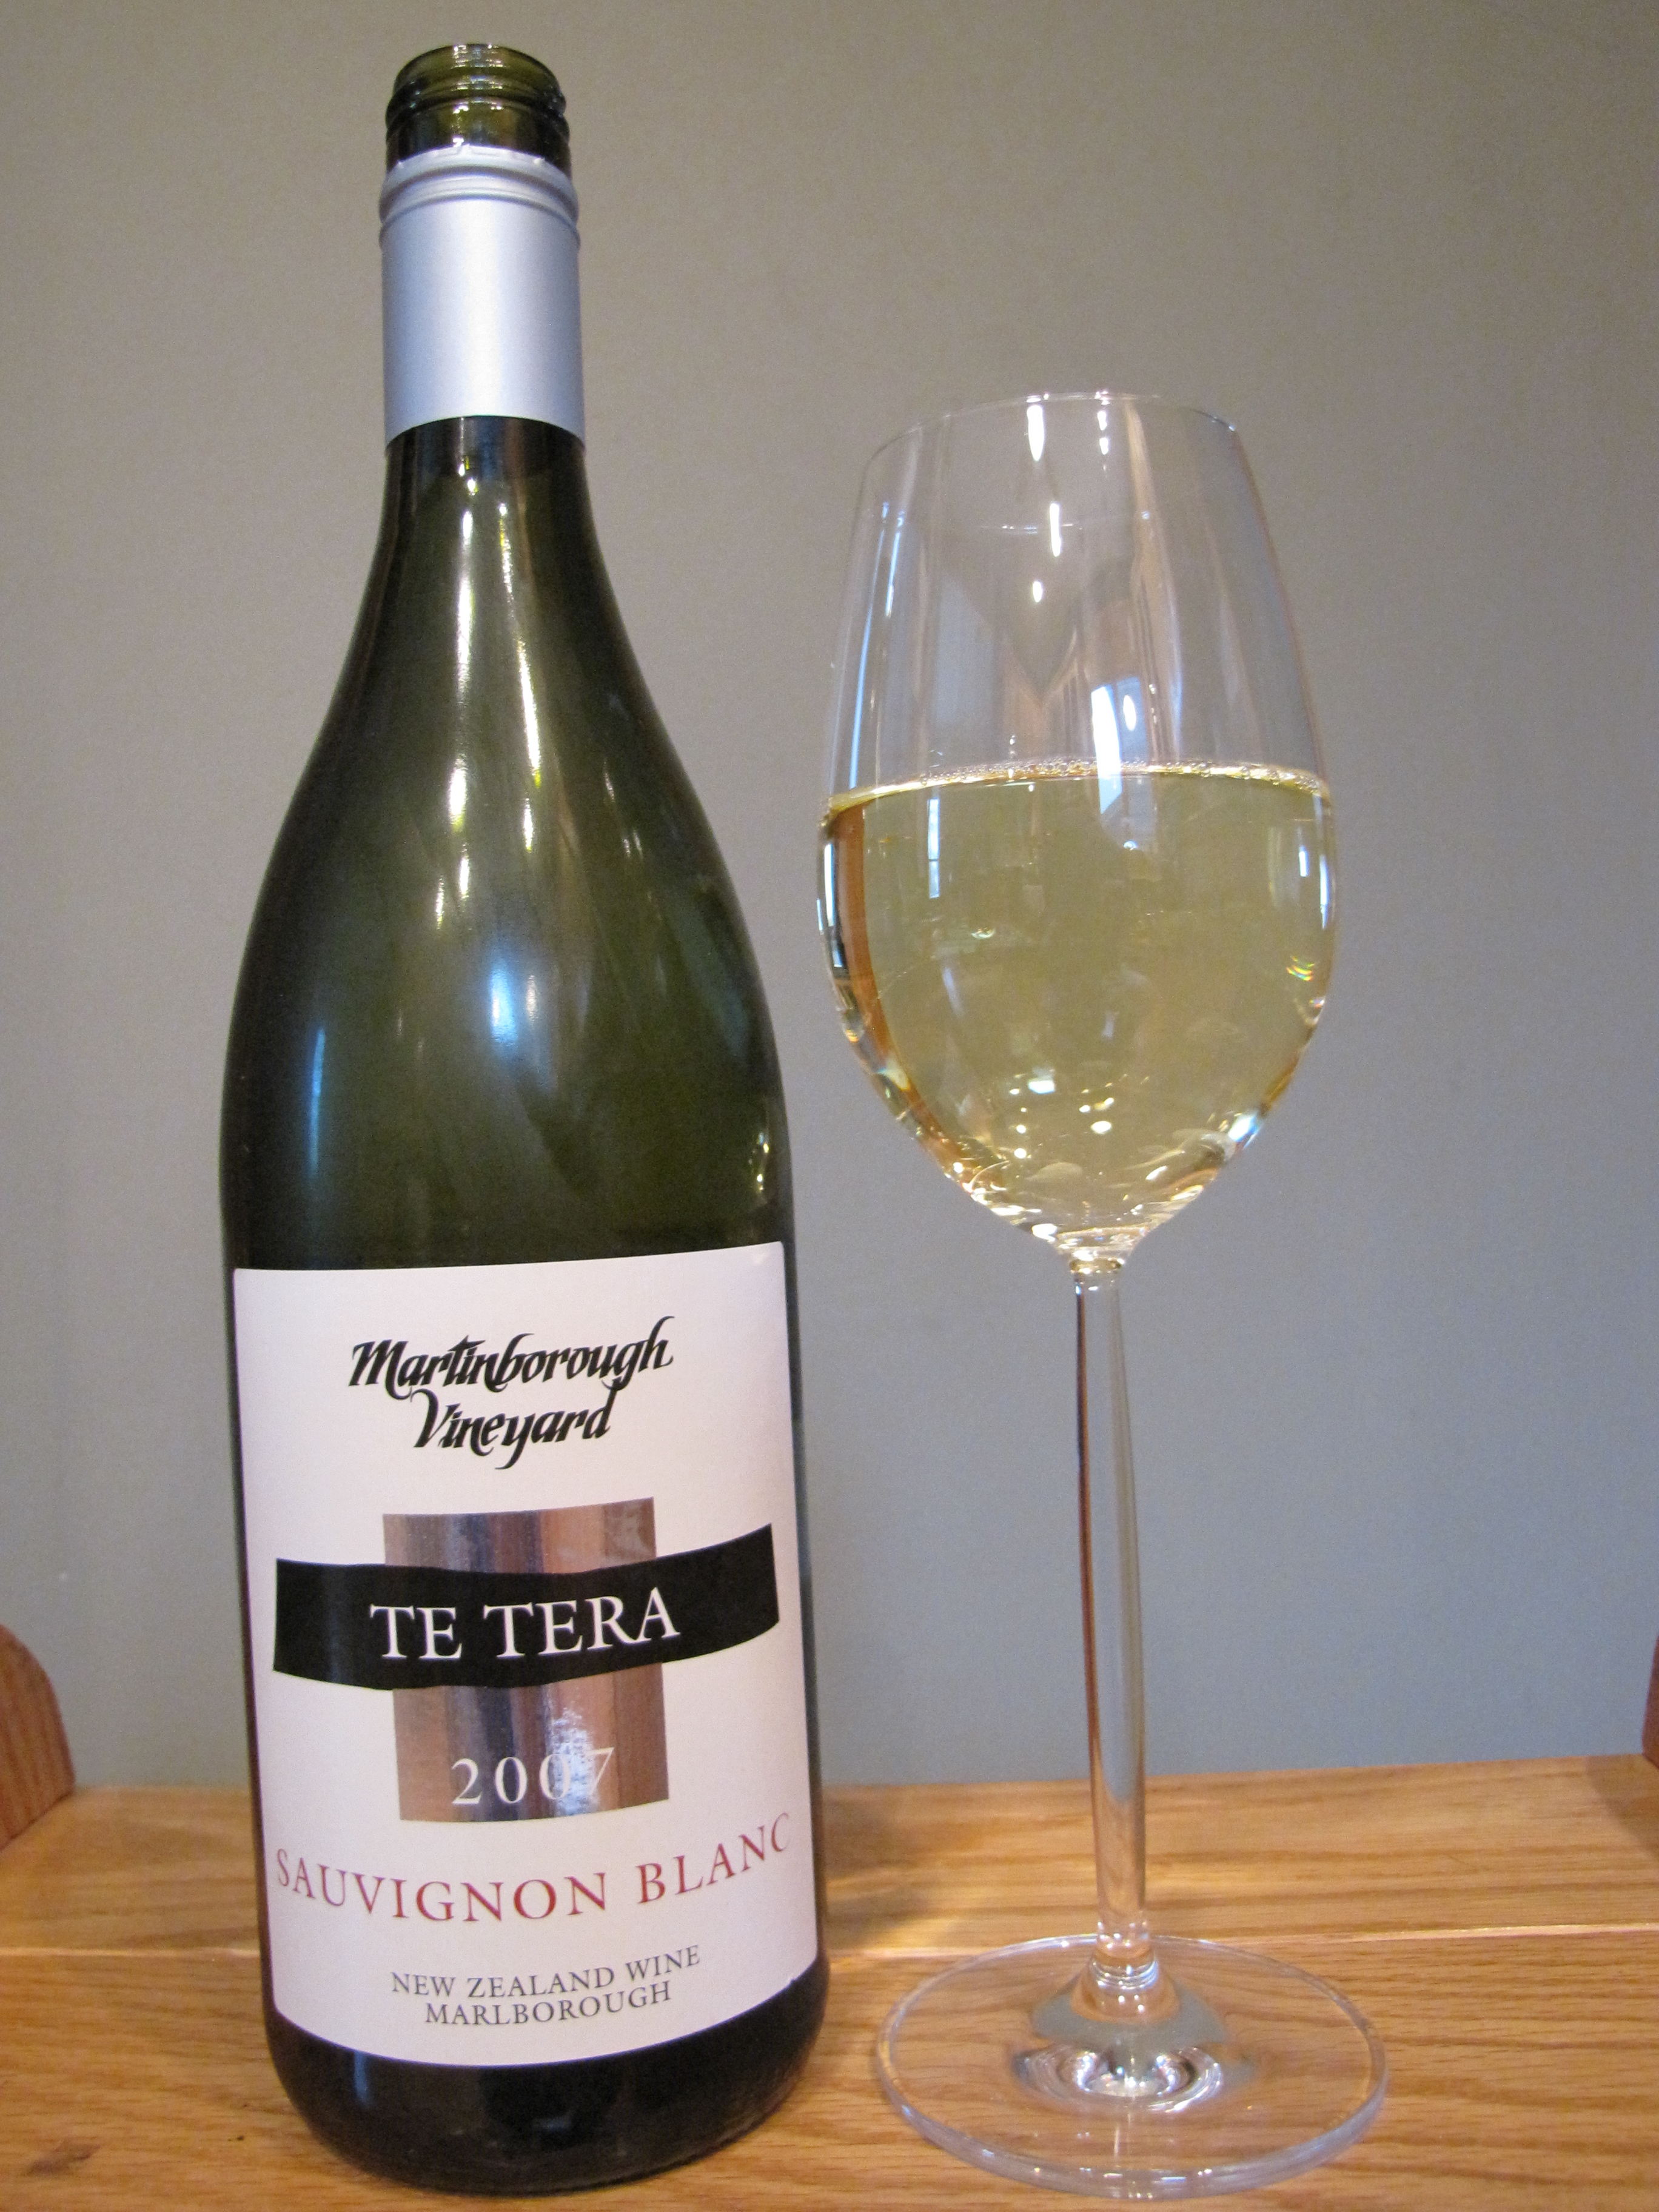 Martinborough Vineyard Sauvignon Blanc Te Tera (2007)